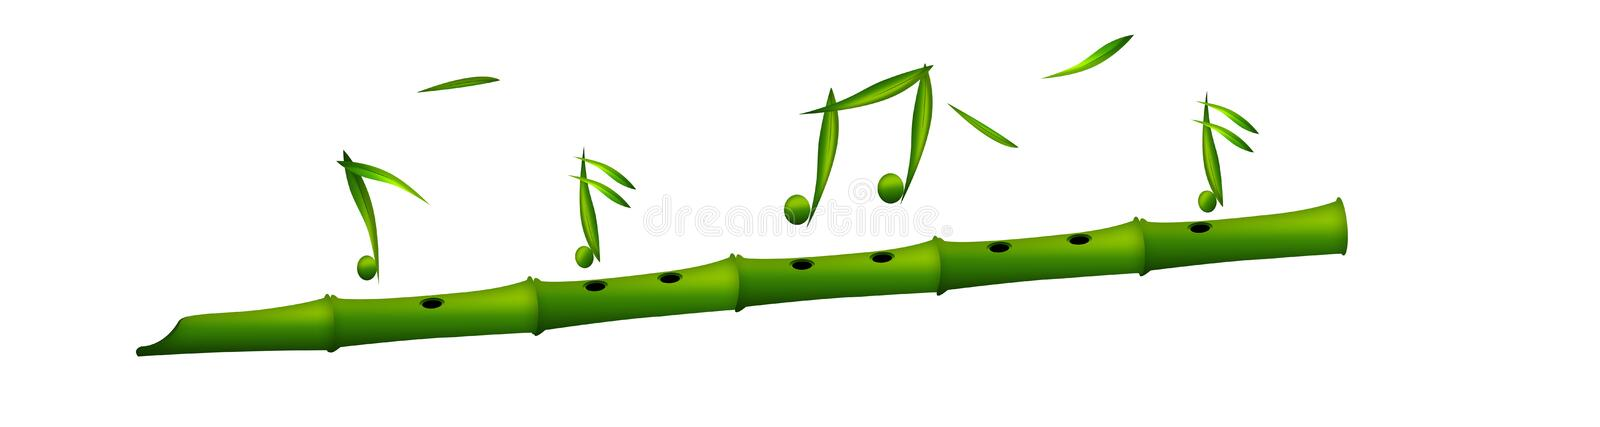 Download Flute stock image. Image of artistic, natural, musician - 6510587